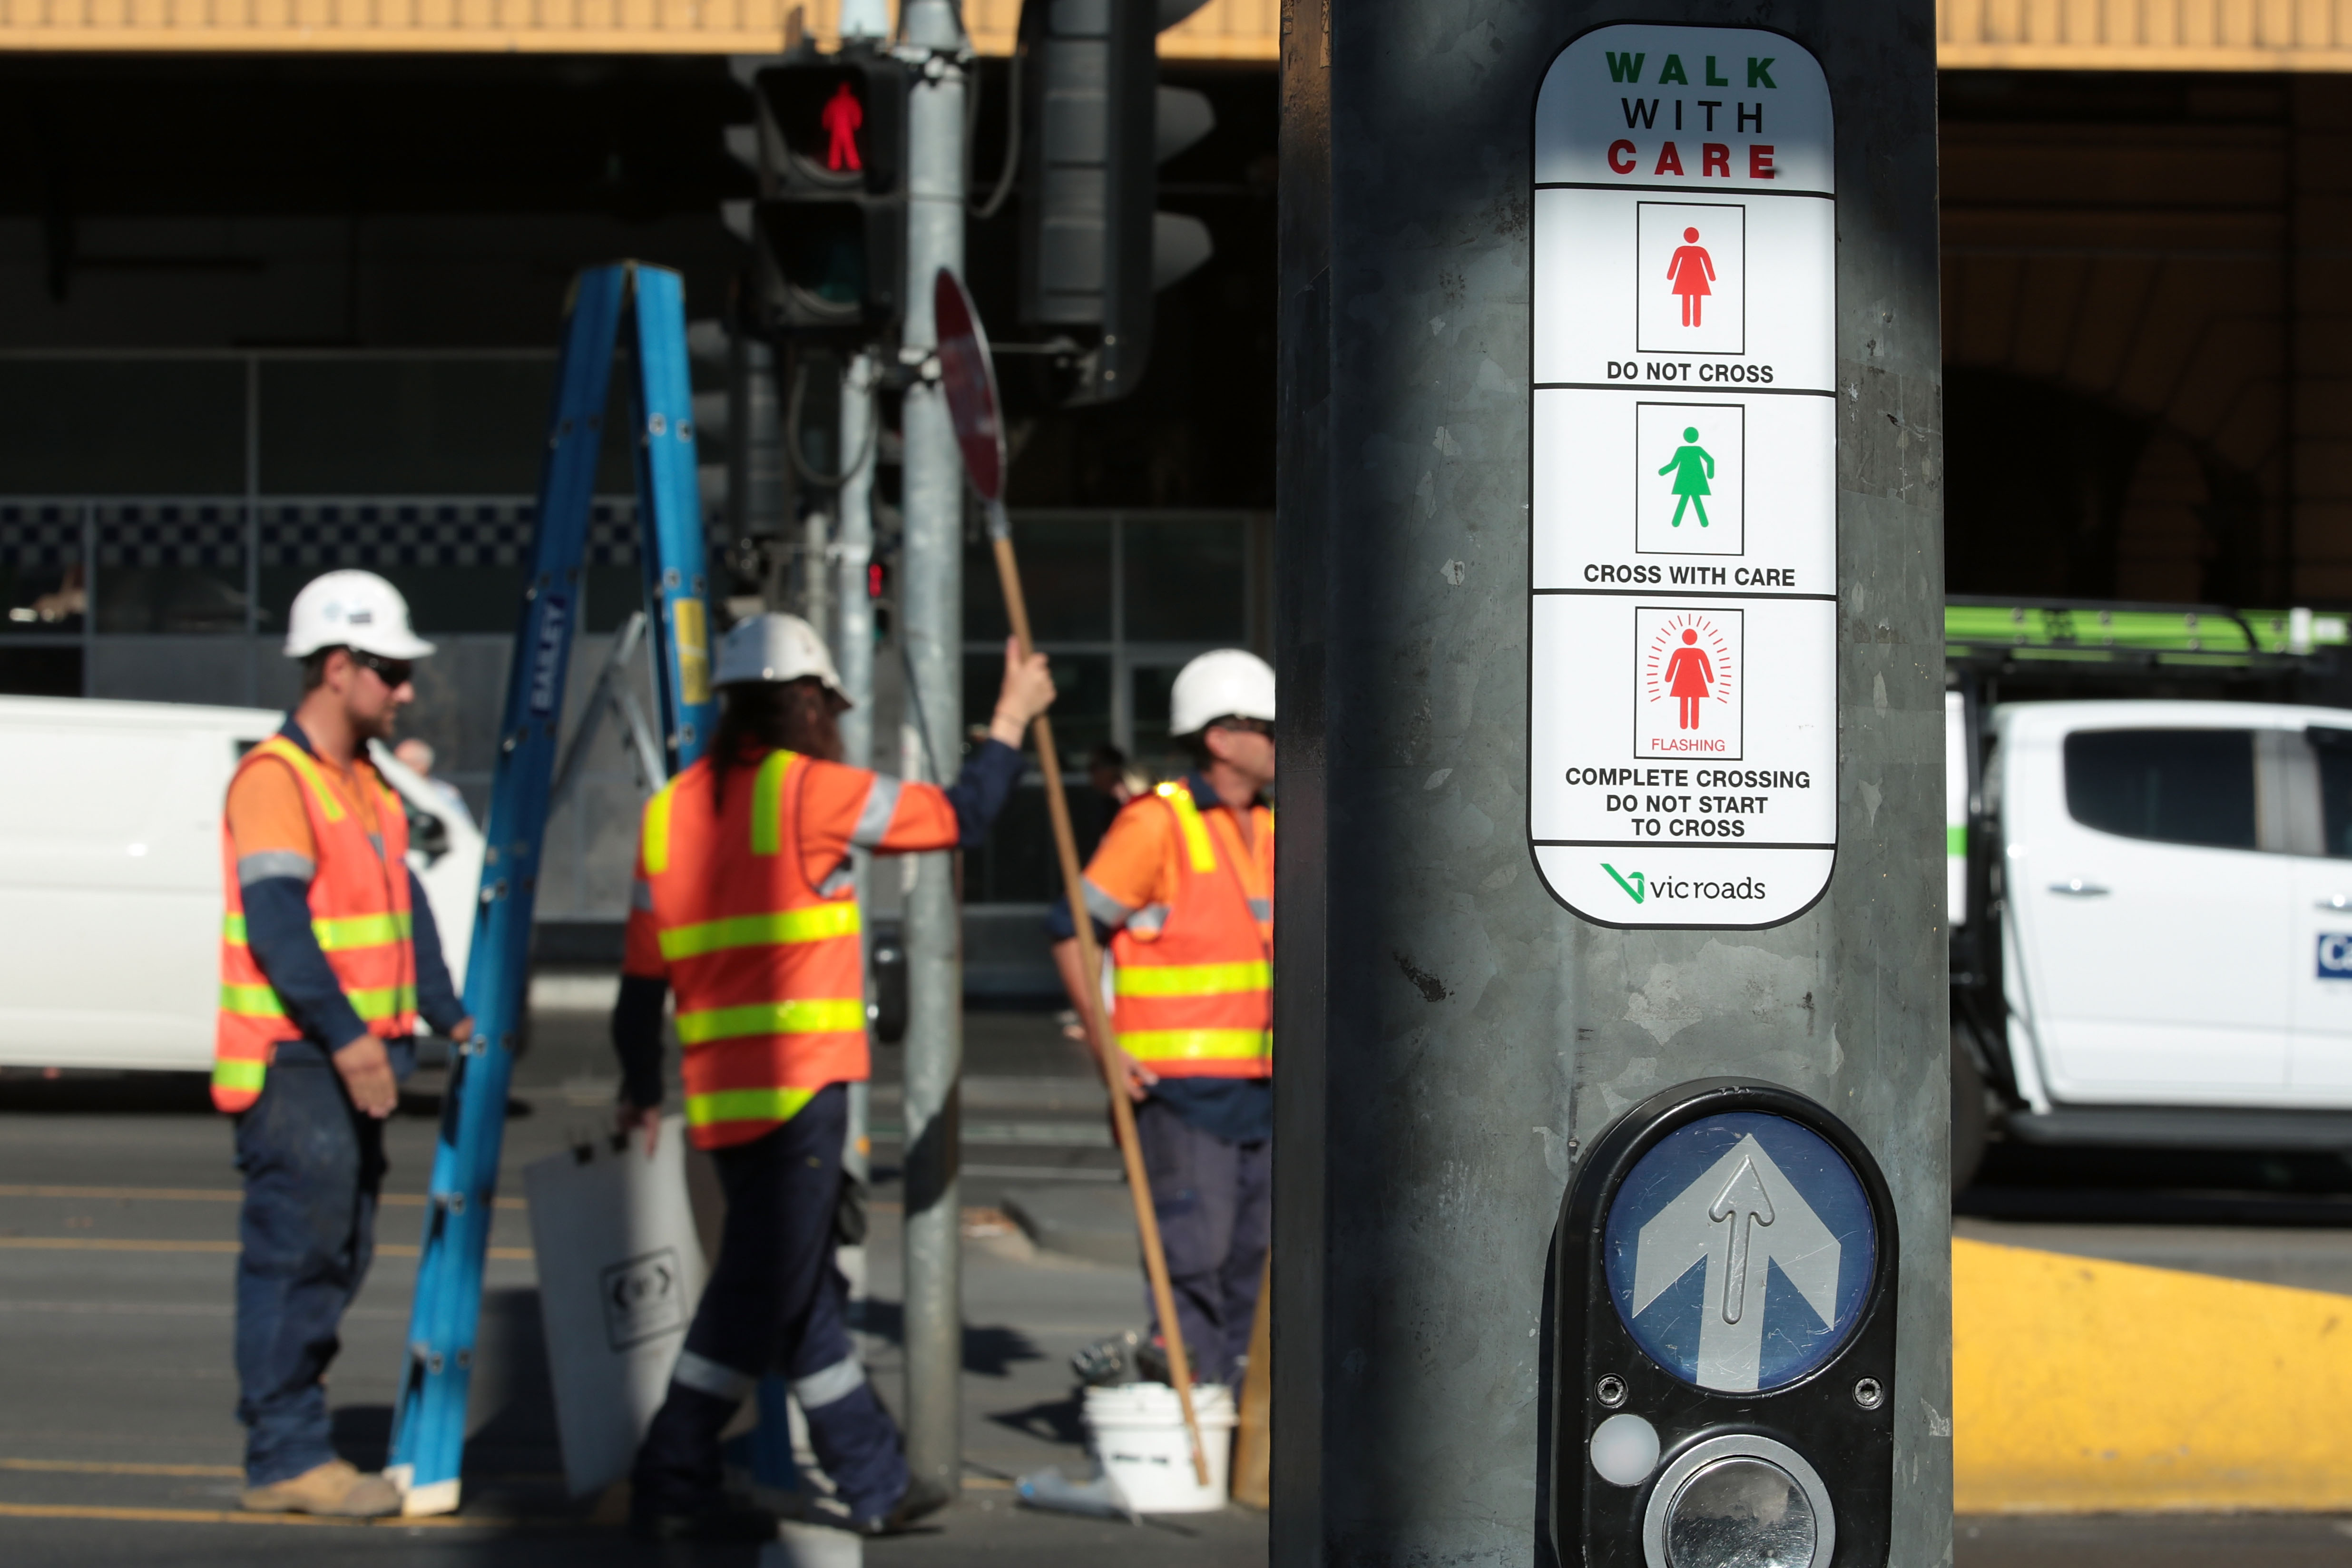 Female traffic light signals are installed an intersection in Melbourne, Australia on March 7, 2017.